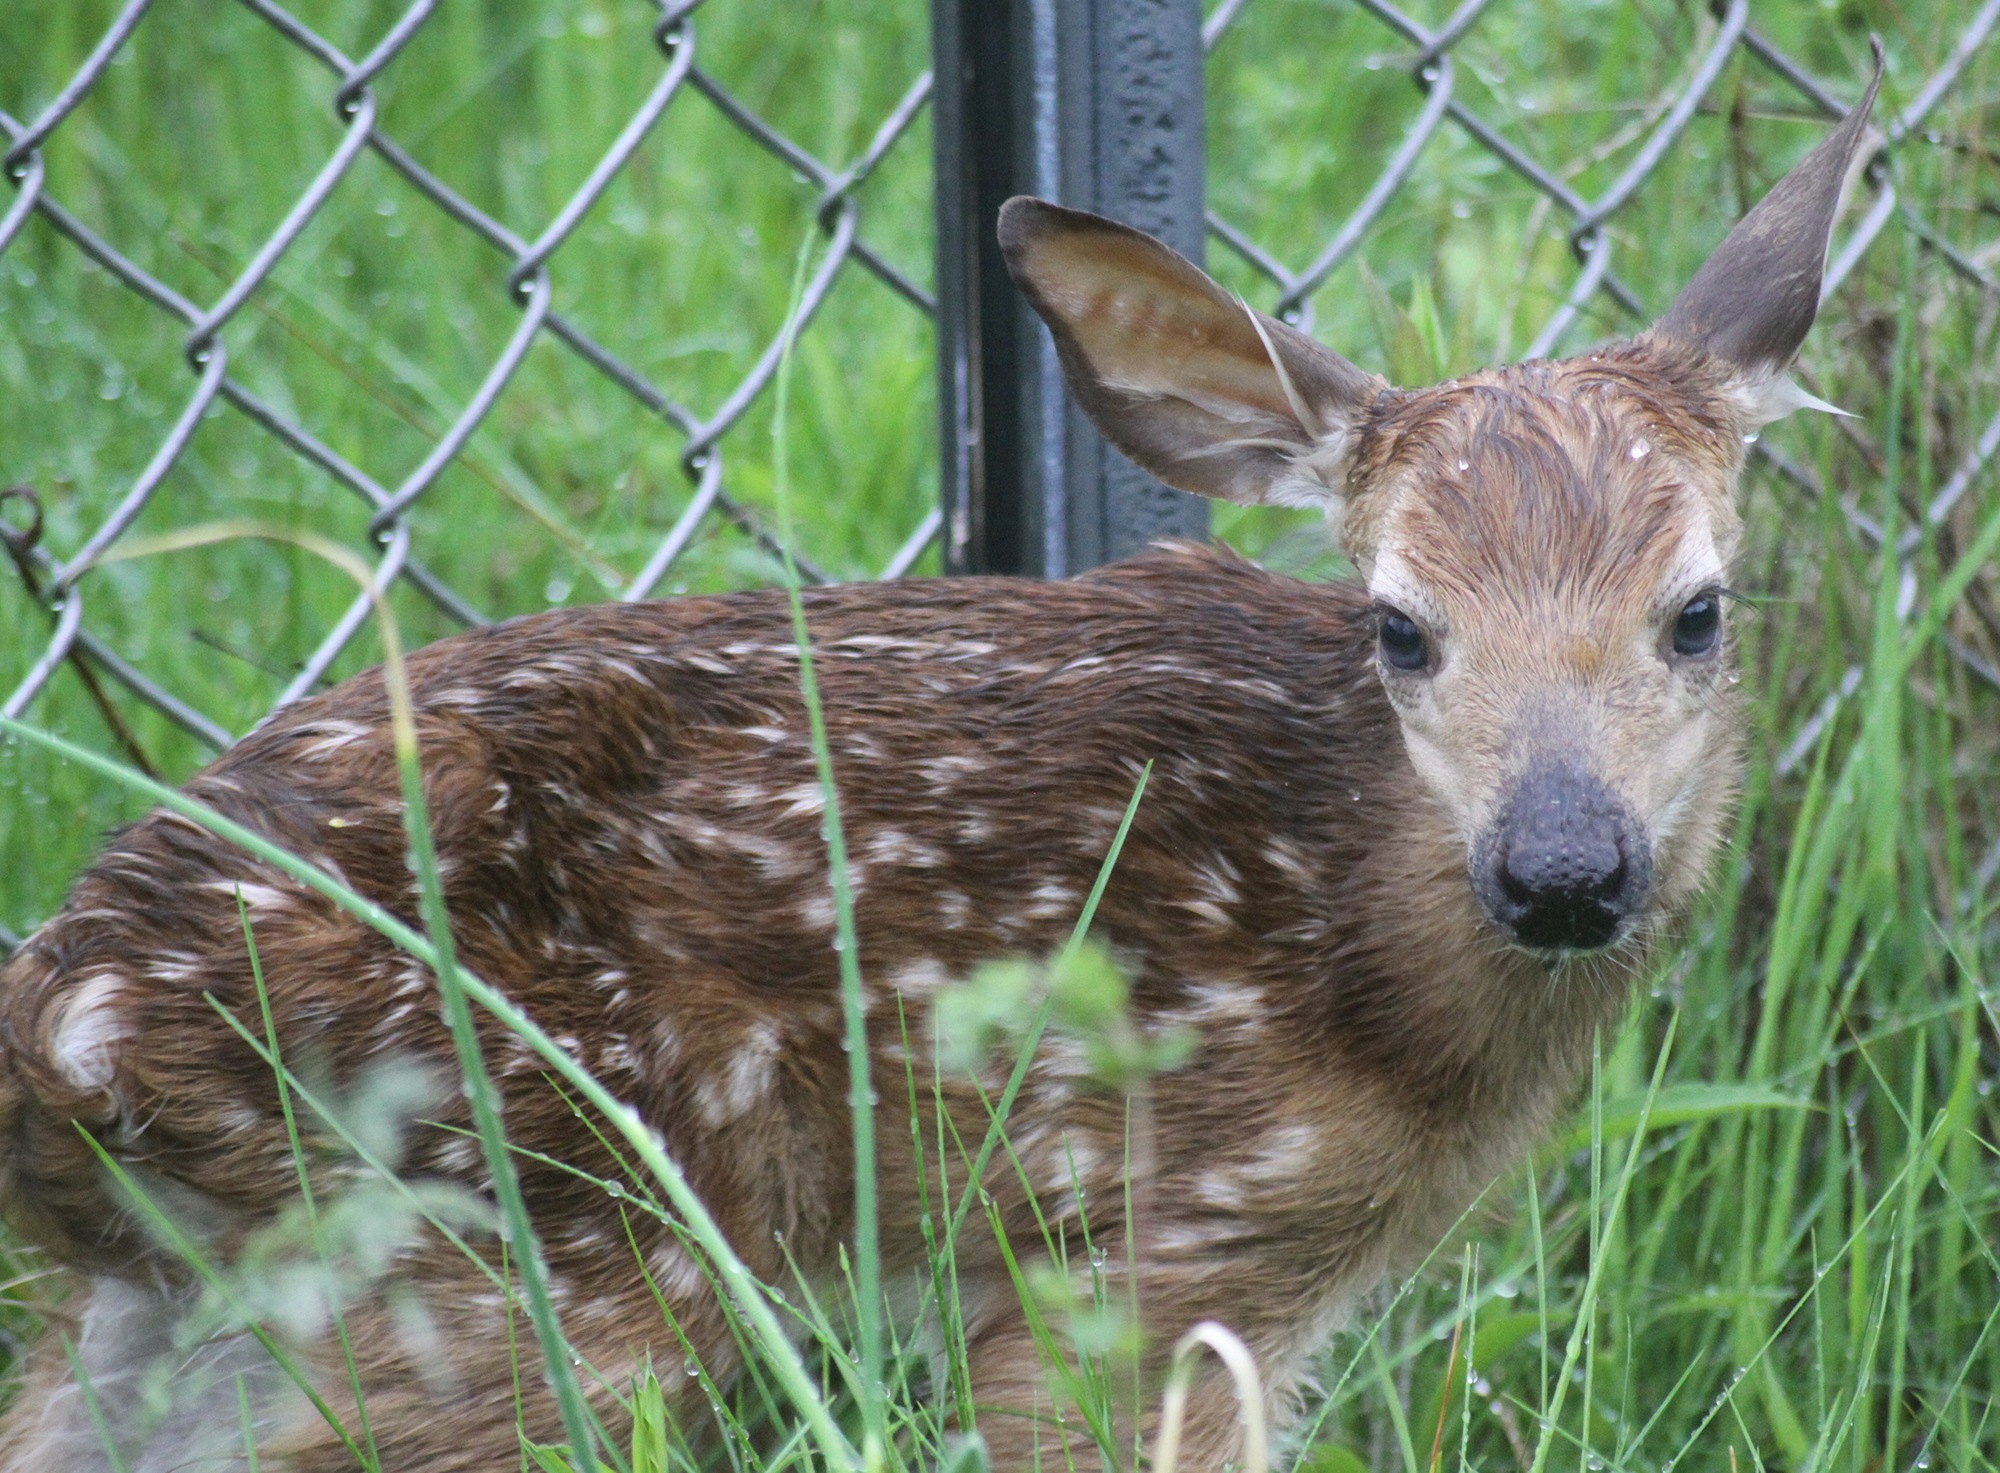 a little more soggy bambi by cboehlkejr